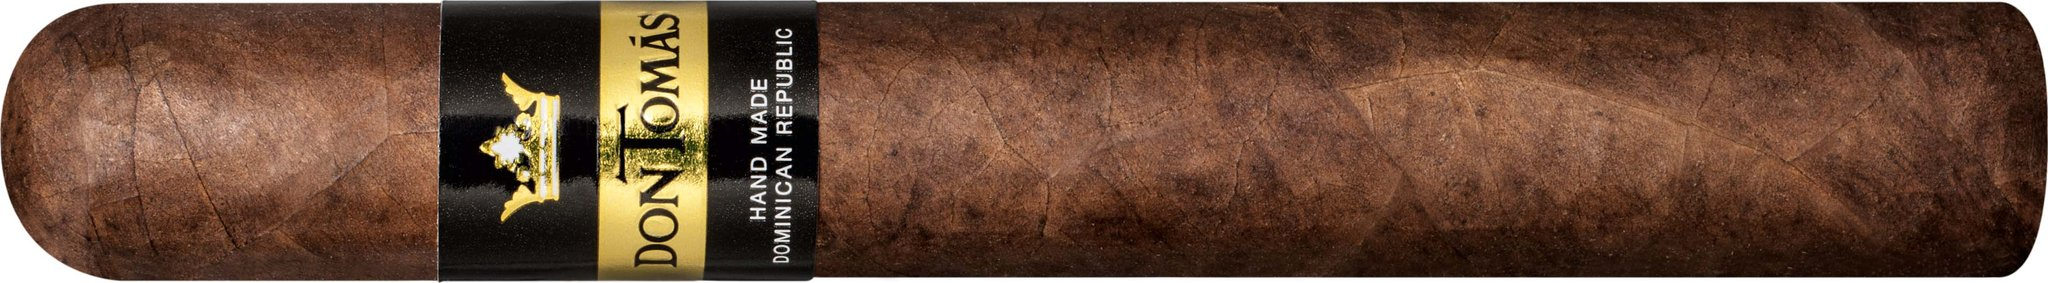 Don Tomas Bundles Robusto